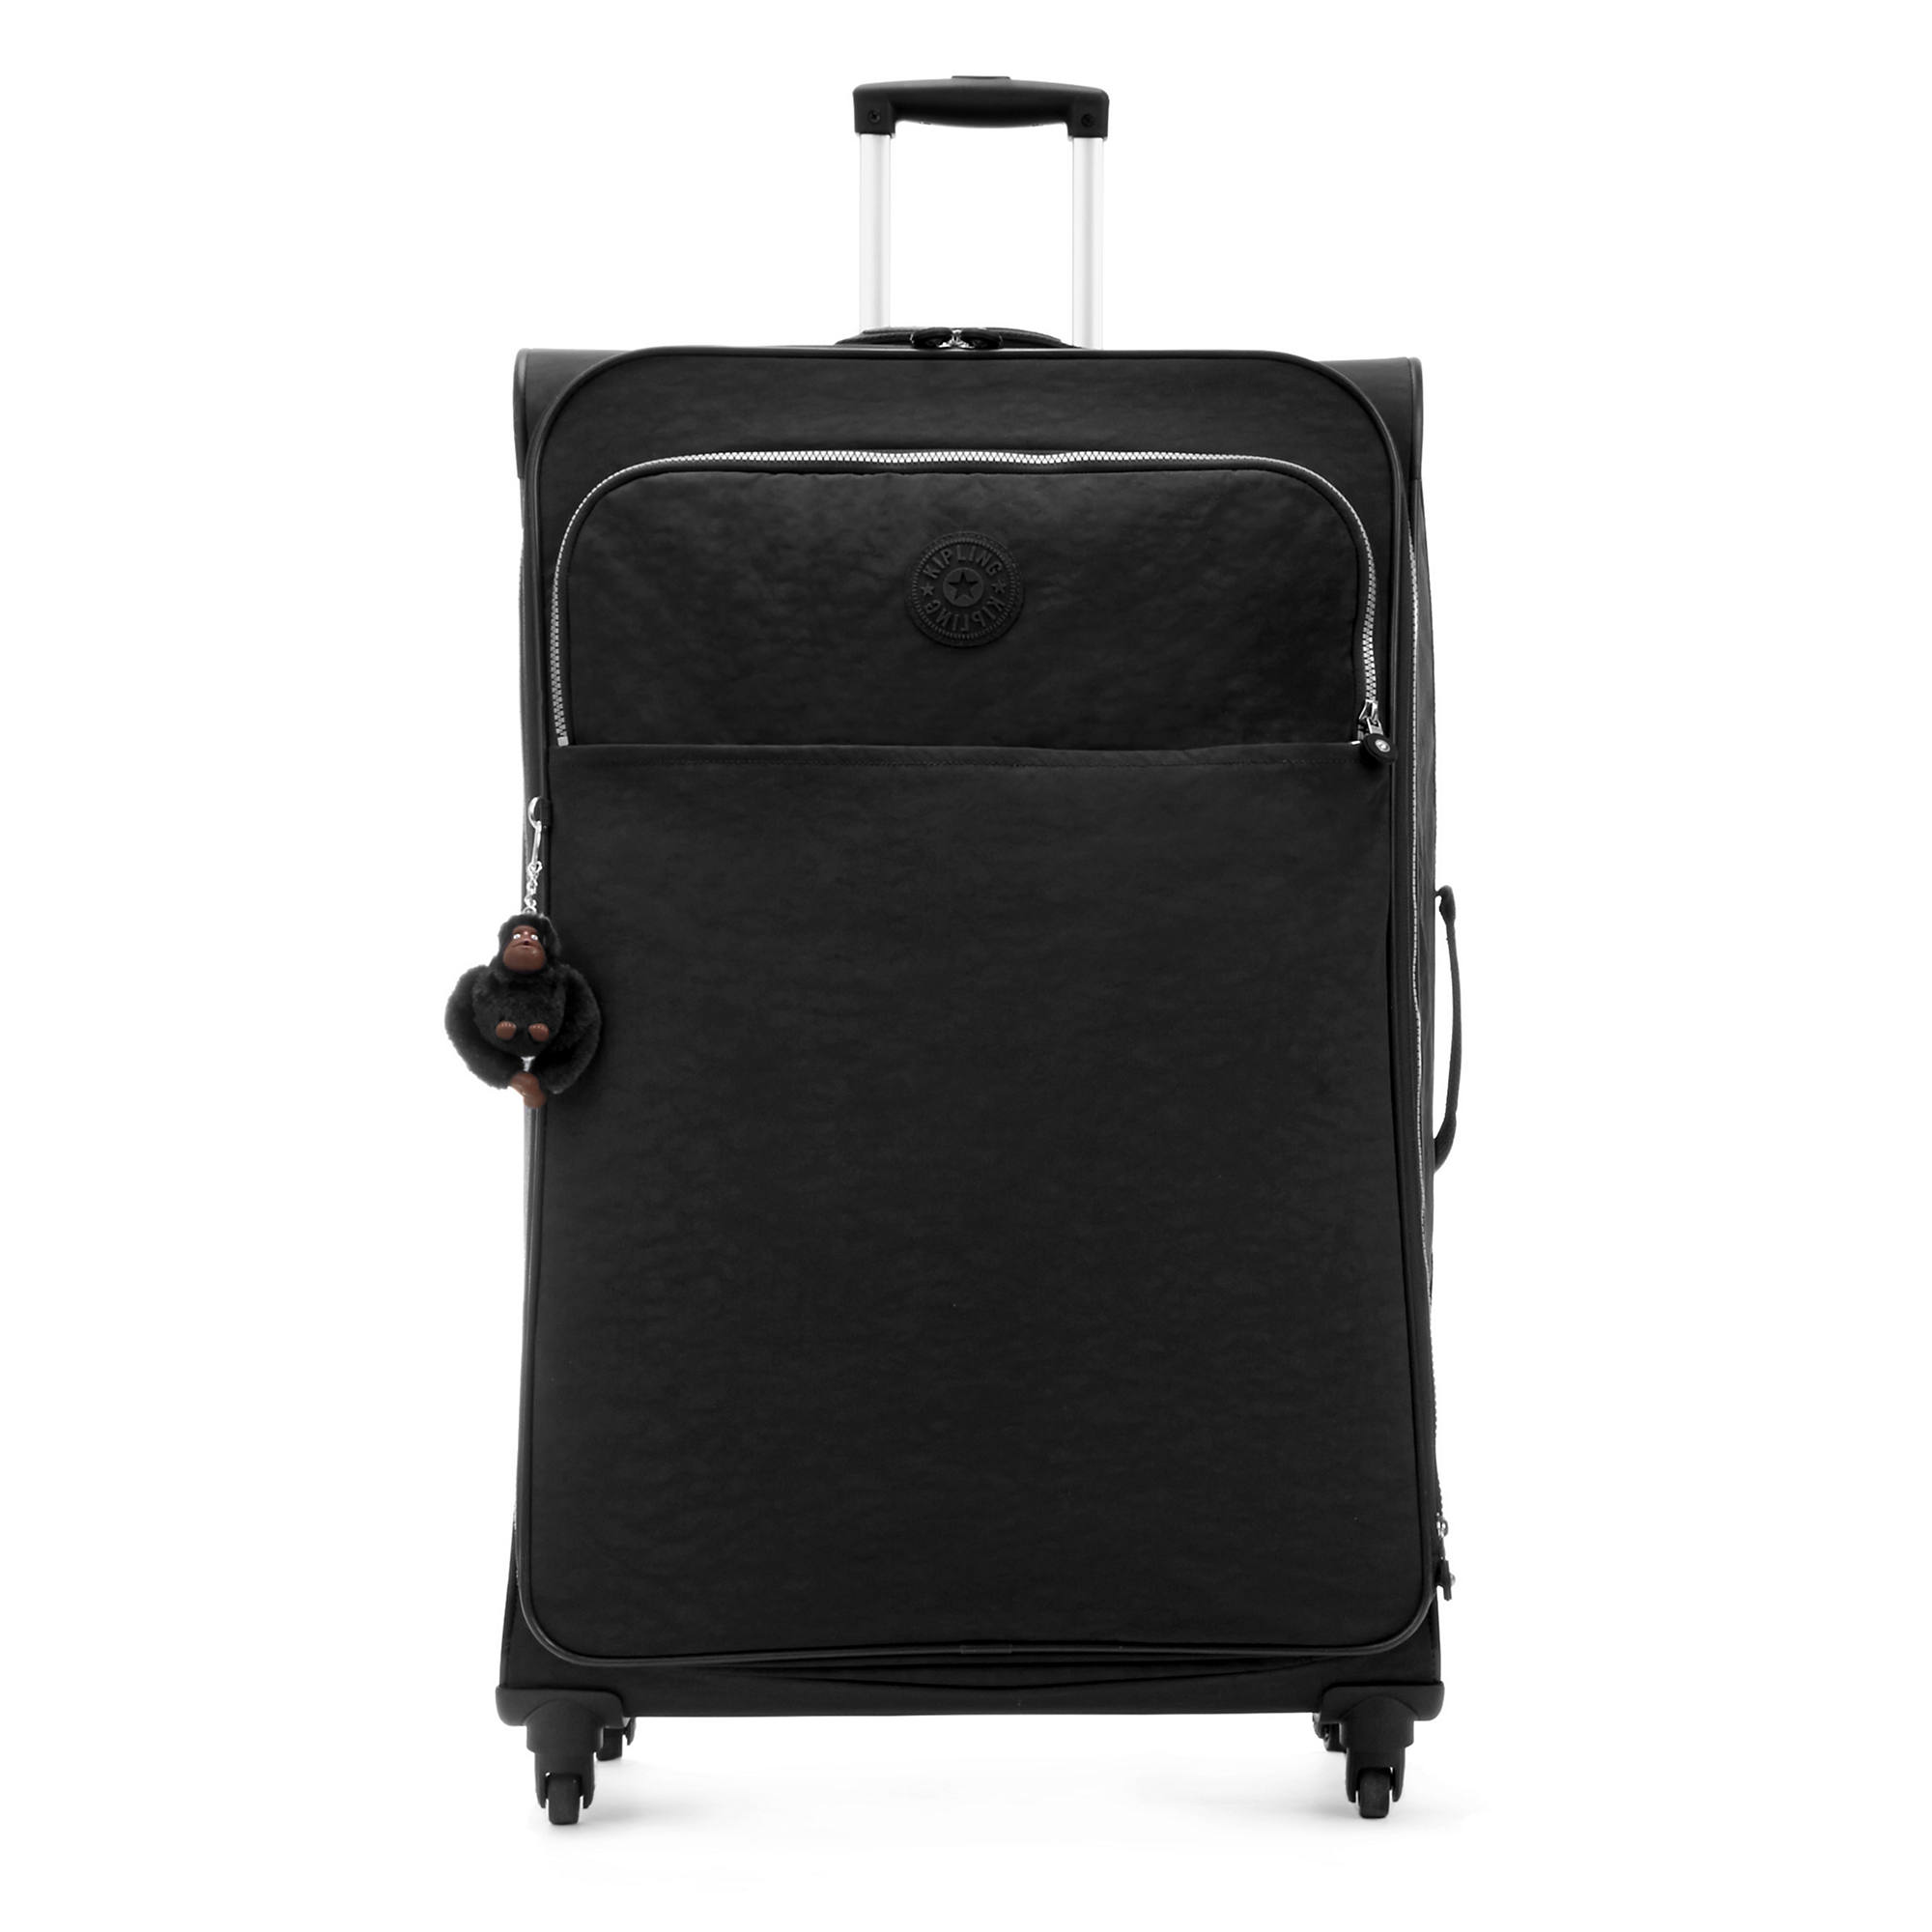 c6434272f65 Parker Large Rolling Luggage